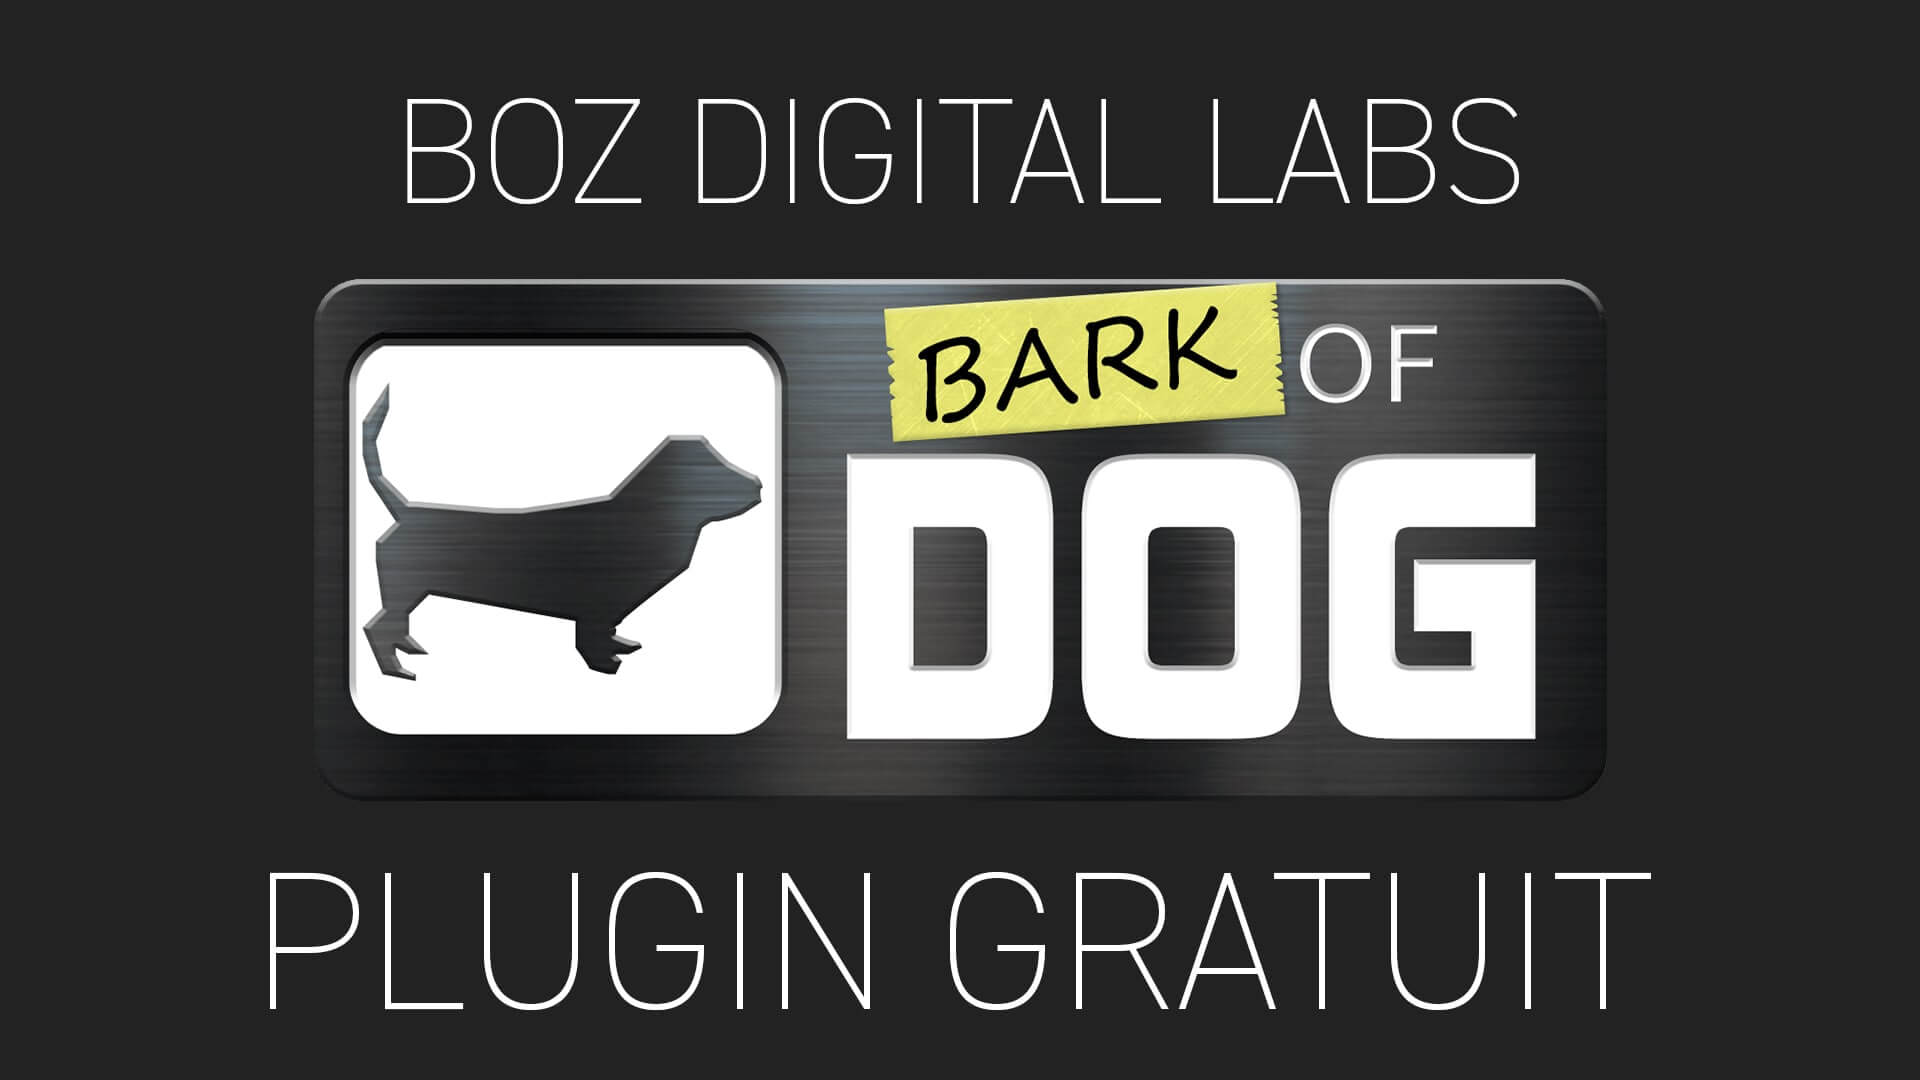 Bark of Dog de Boz Digital Labs Plugin Gratuit